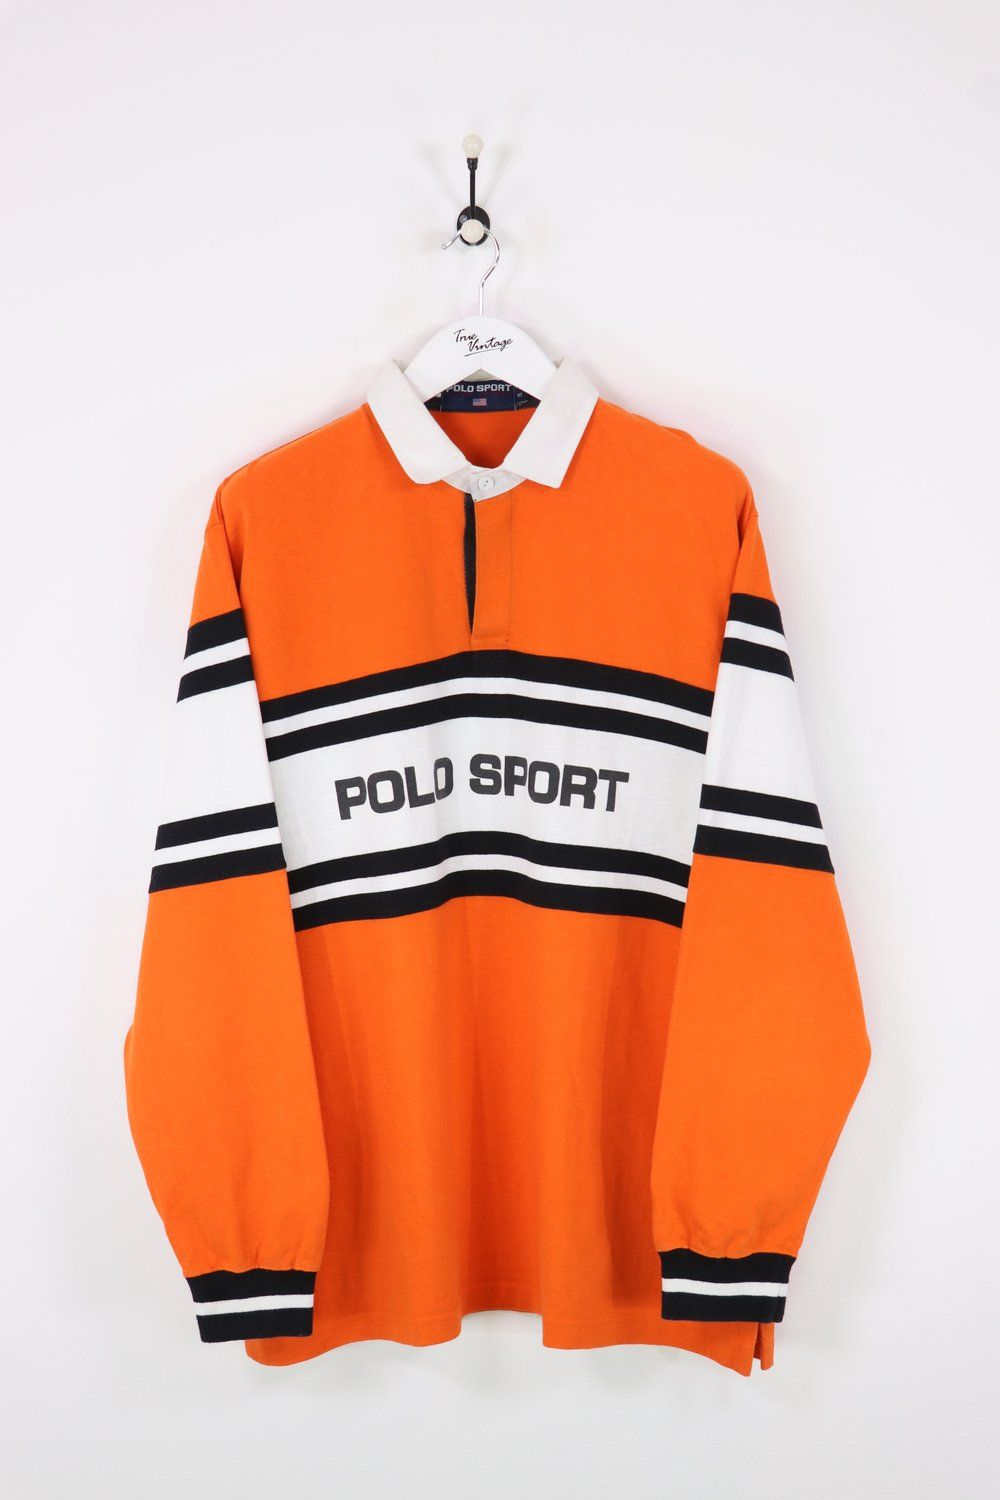 new products 758e6 b0087 Polo Sport Rugby Top OrangeWhite XXL